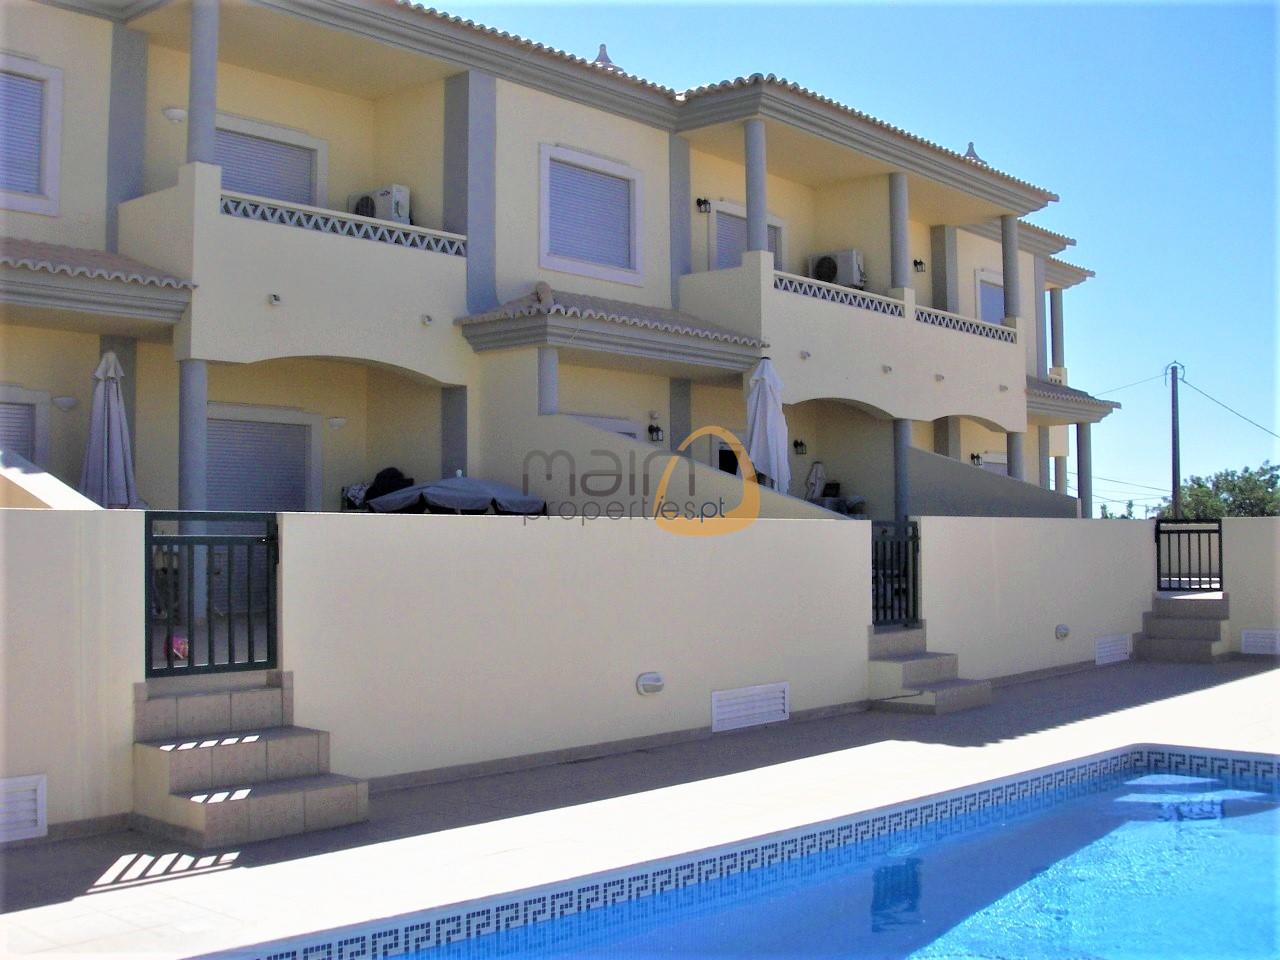 Villa with 3 bedrooms and swimming pool for annual rent in Almancil